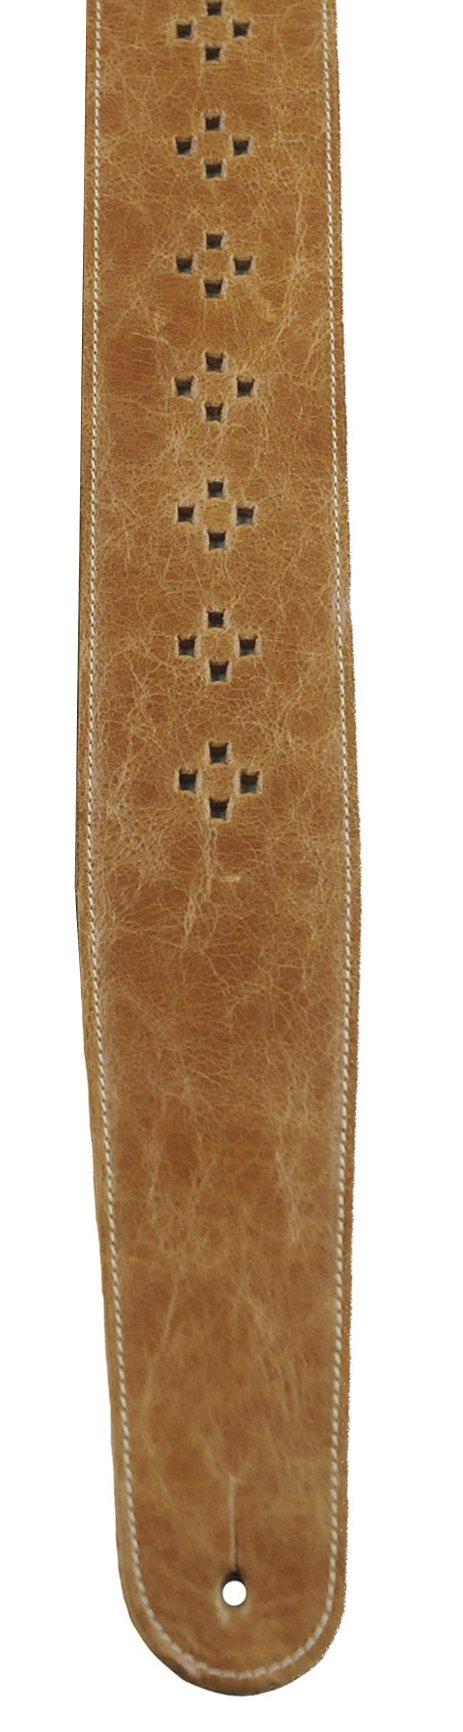 Perris Leathers P25PERF-6709 Italian Leather Guitar Straps